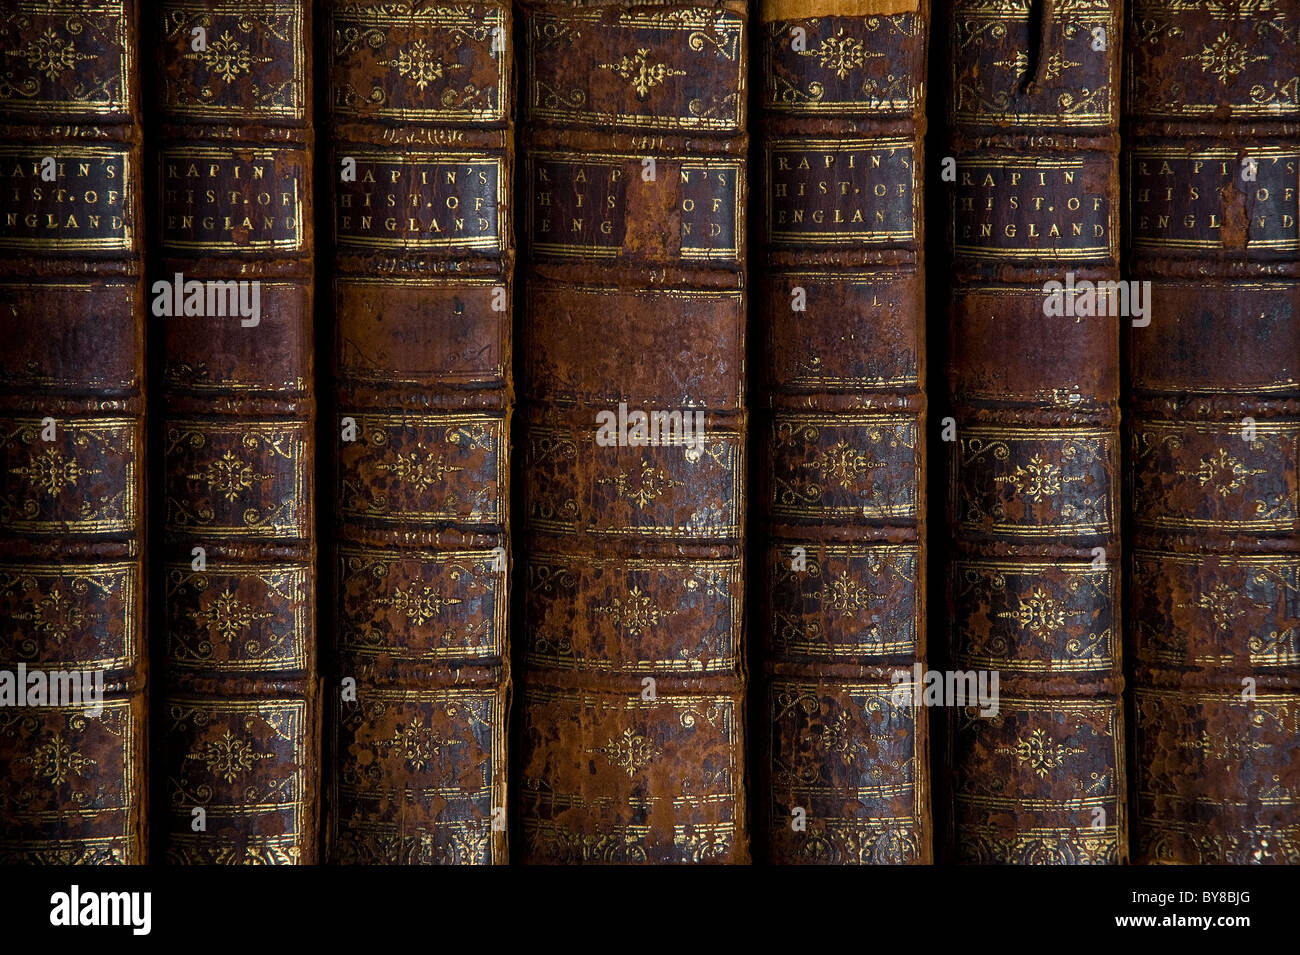 Old Books Detail - Stock Image